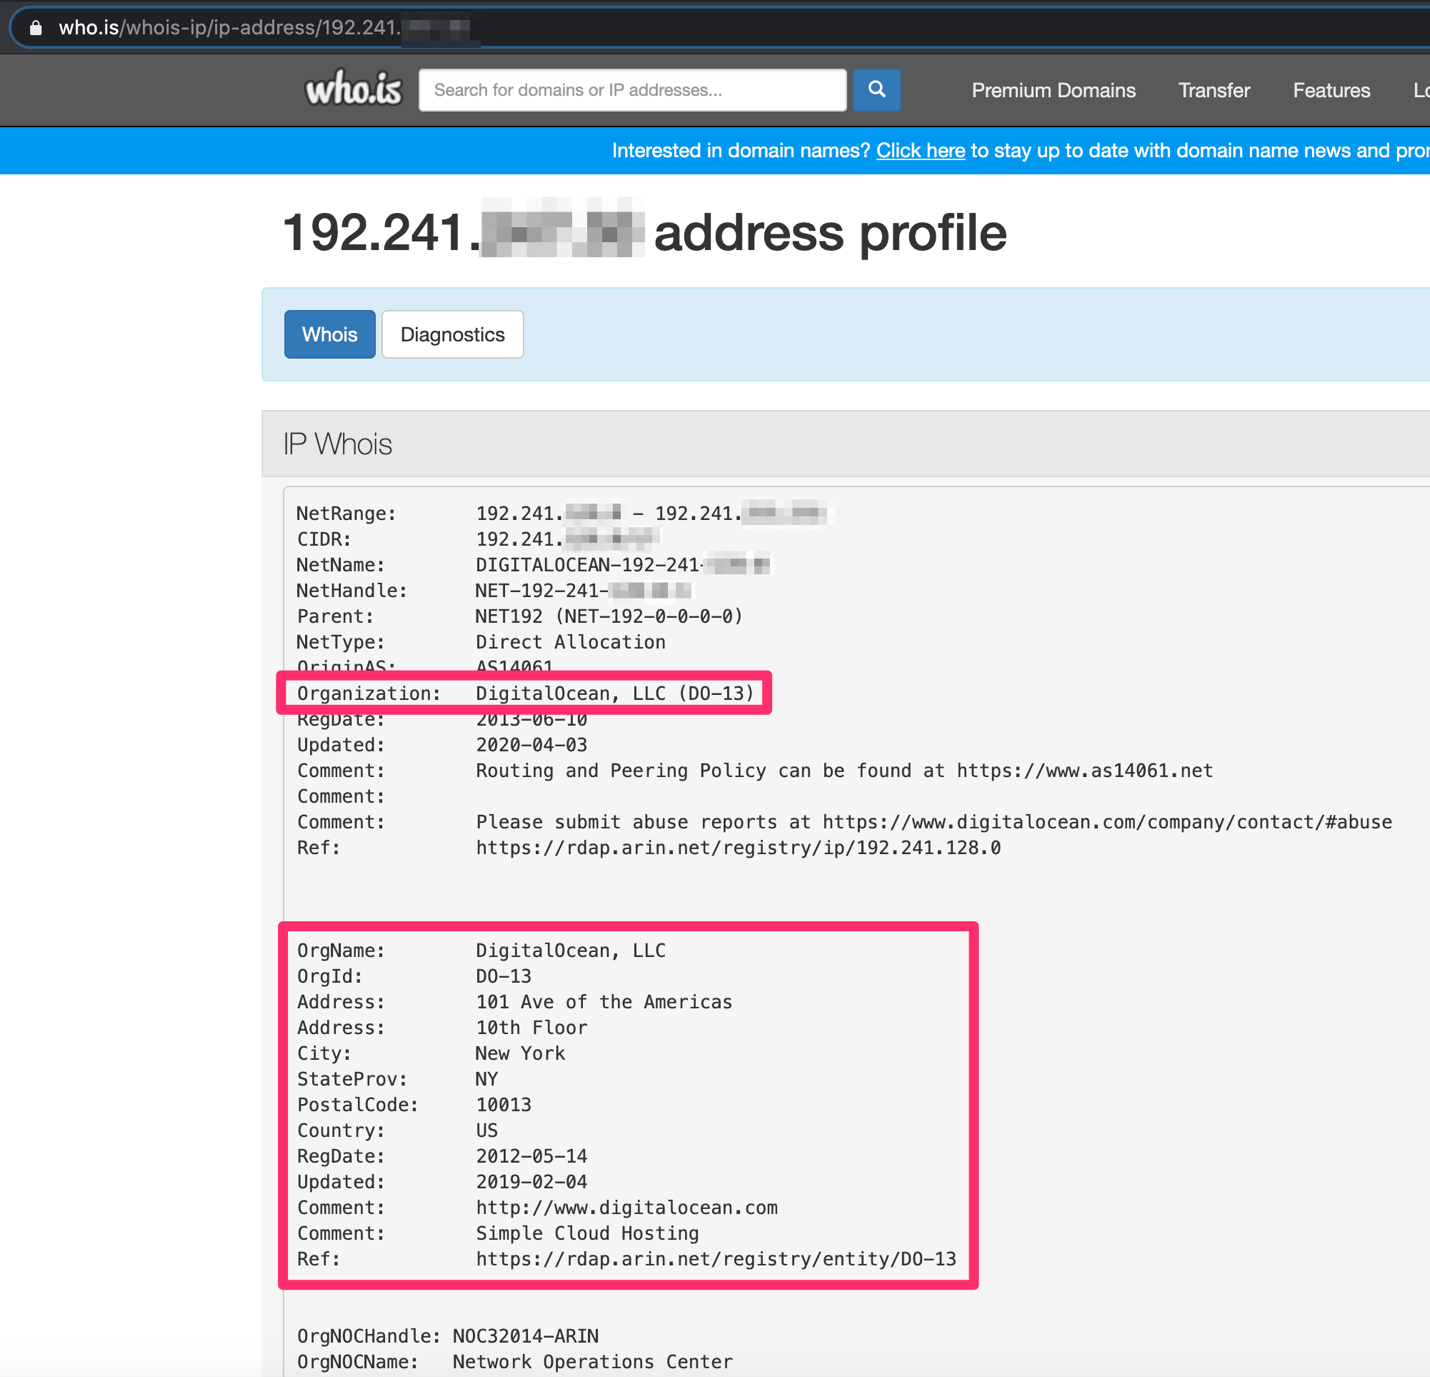 Screenshot of the IP address organization being DigitalOcean, LLC in New York for one of the tracking pixel hits during this phishing email attack by the White Oak Security blog.